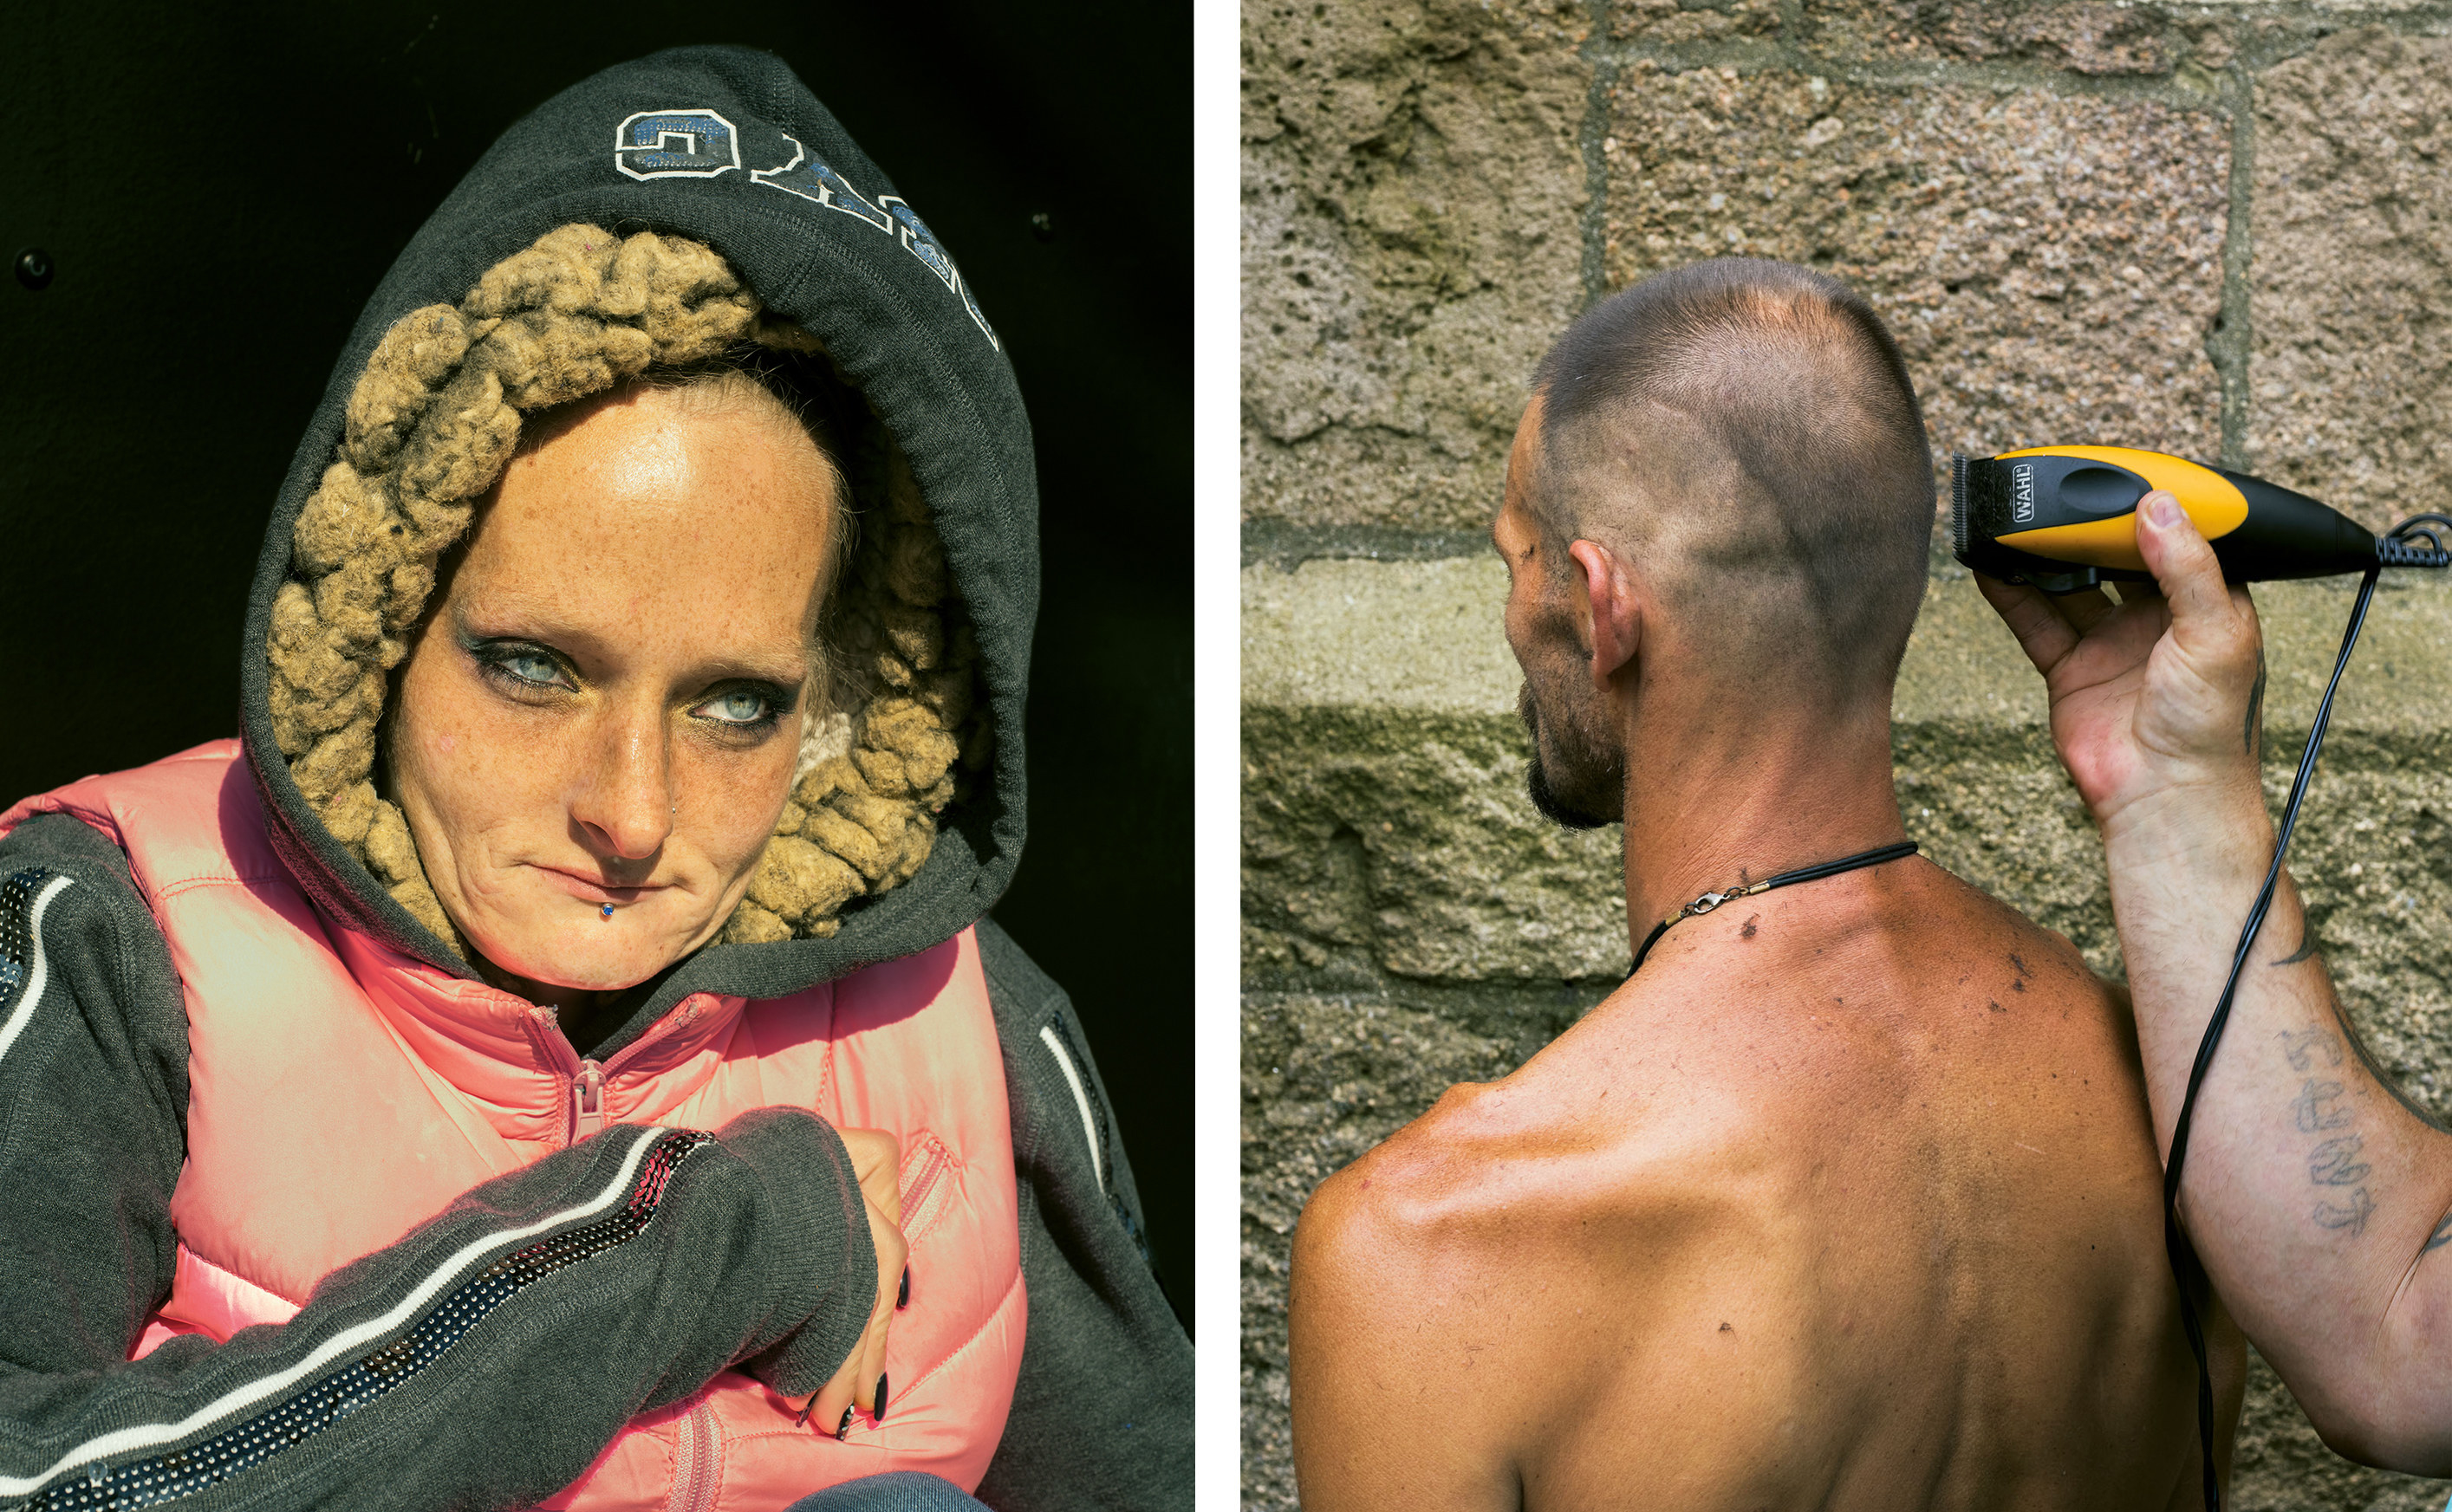 A woman in a hoodie and a man getting his head shaved